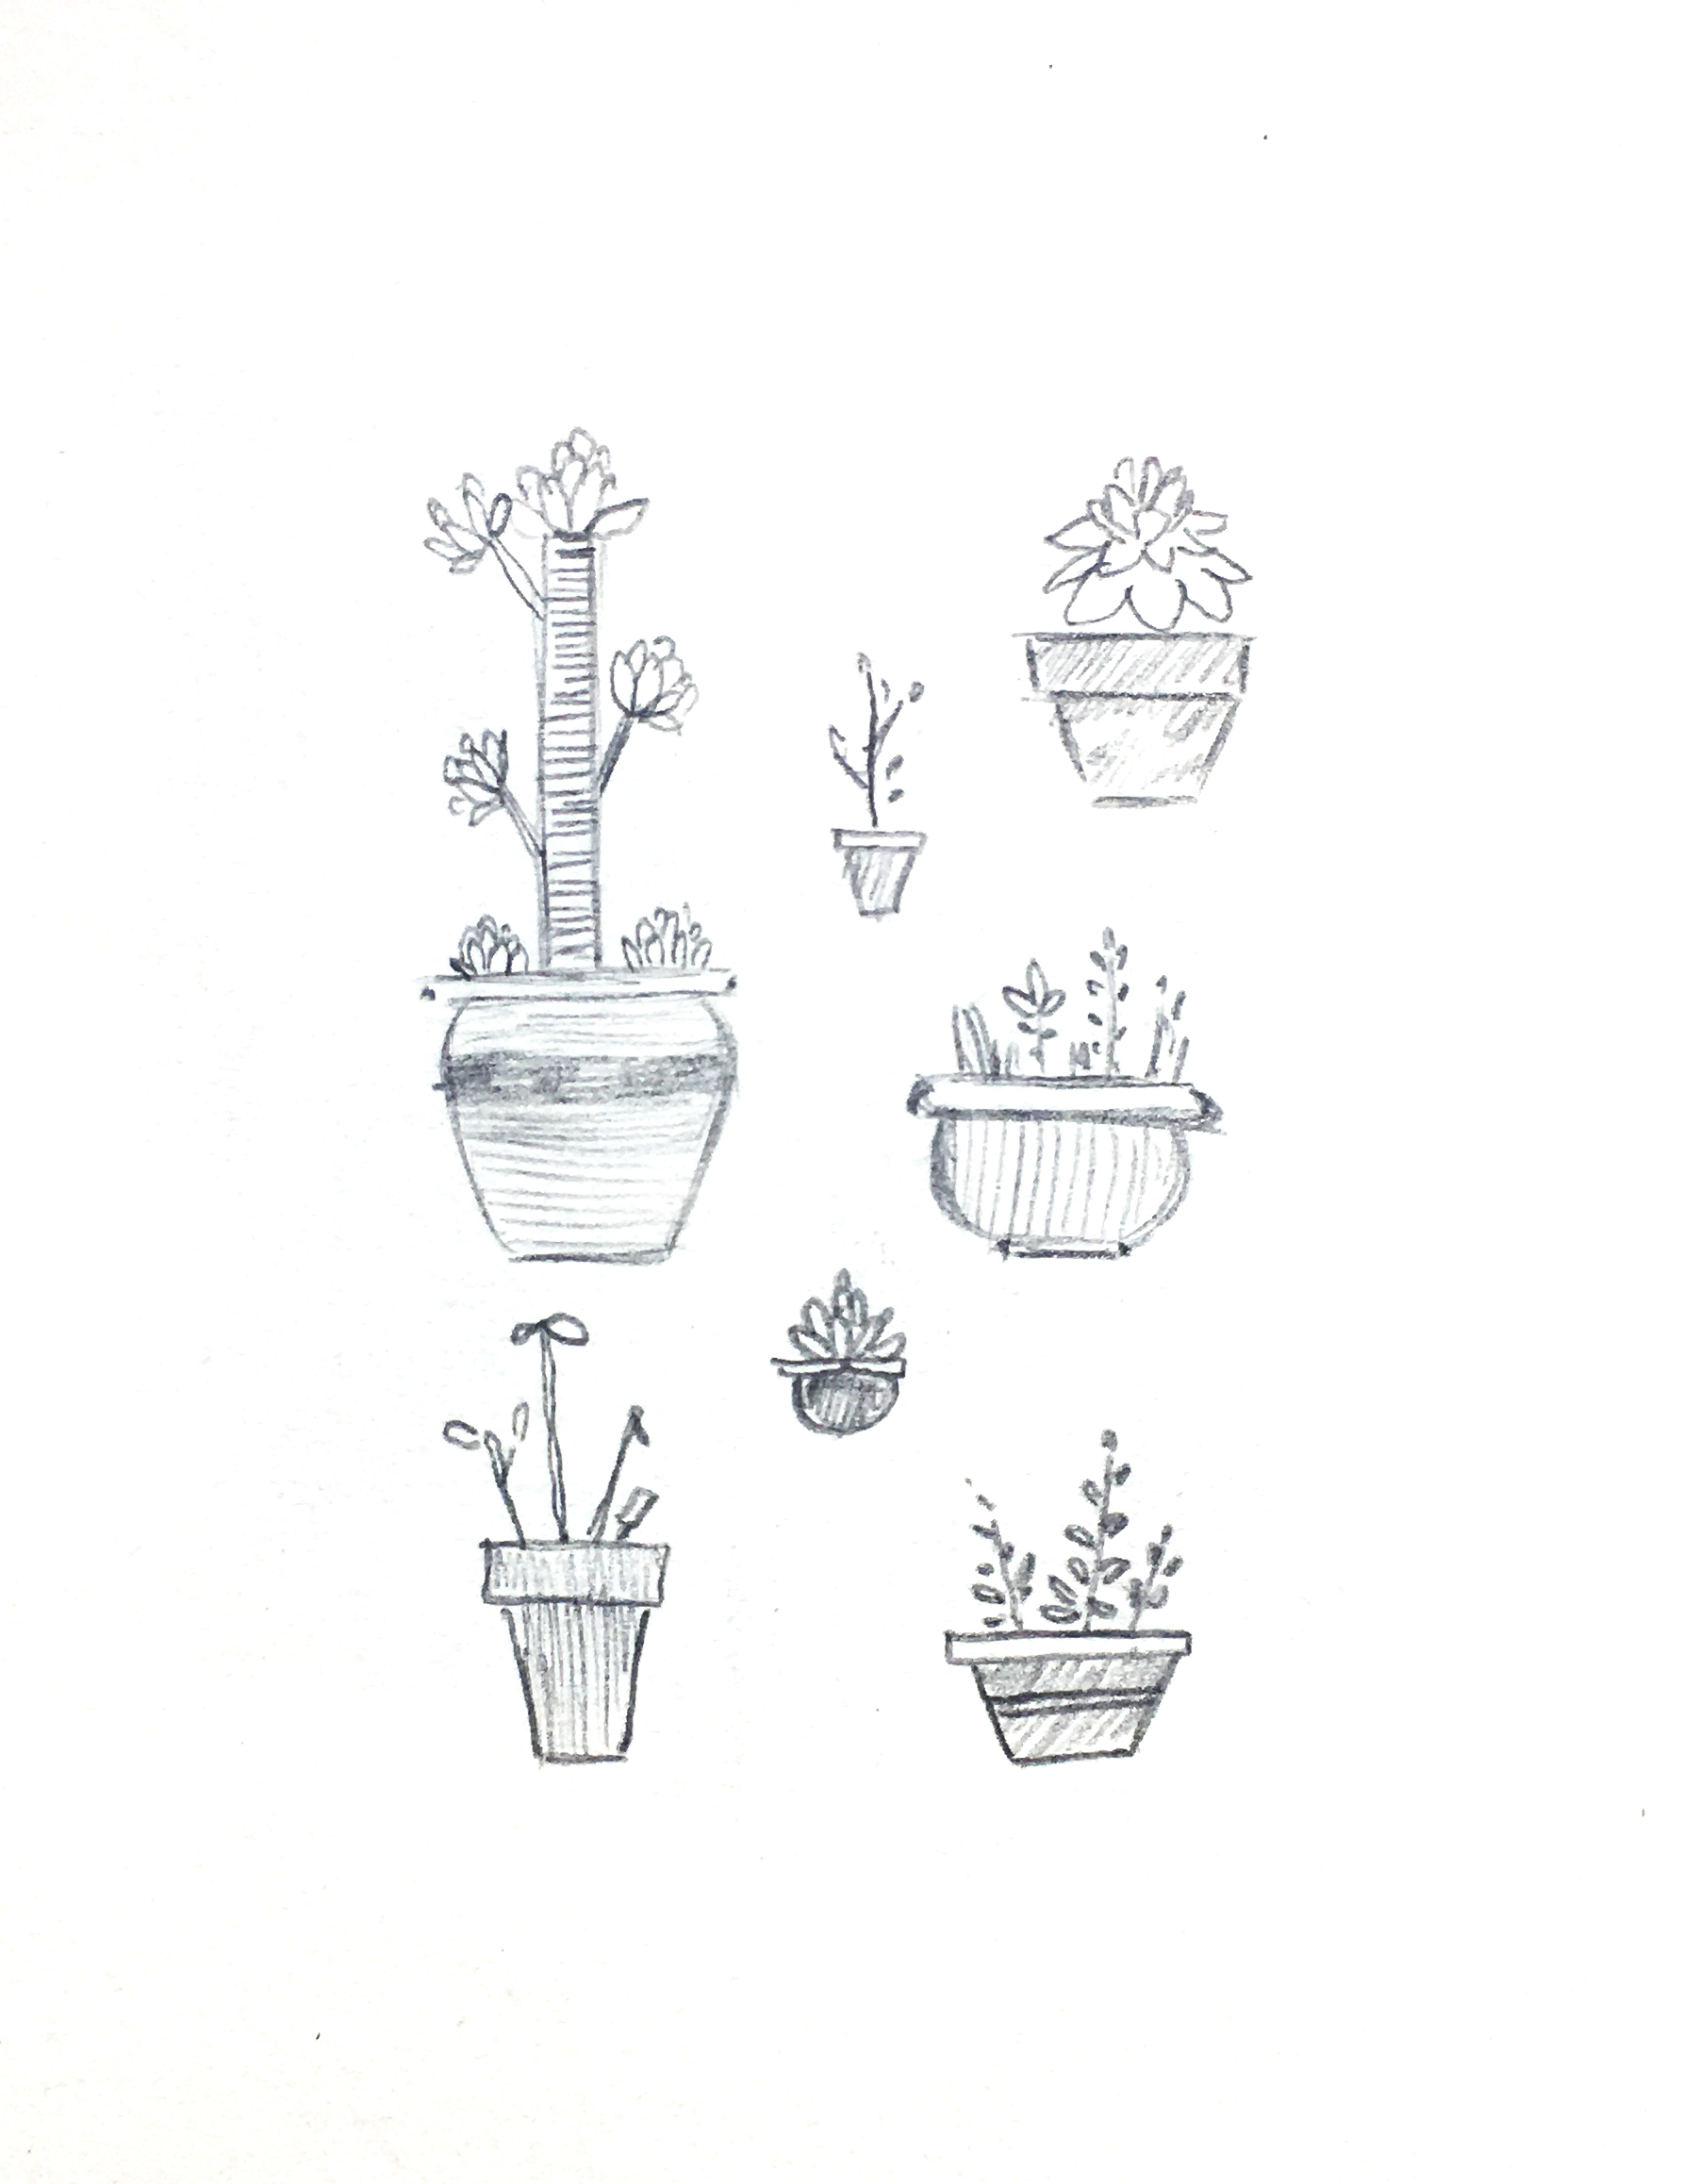 'Plants' © Jonty Howley Illustration